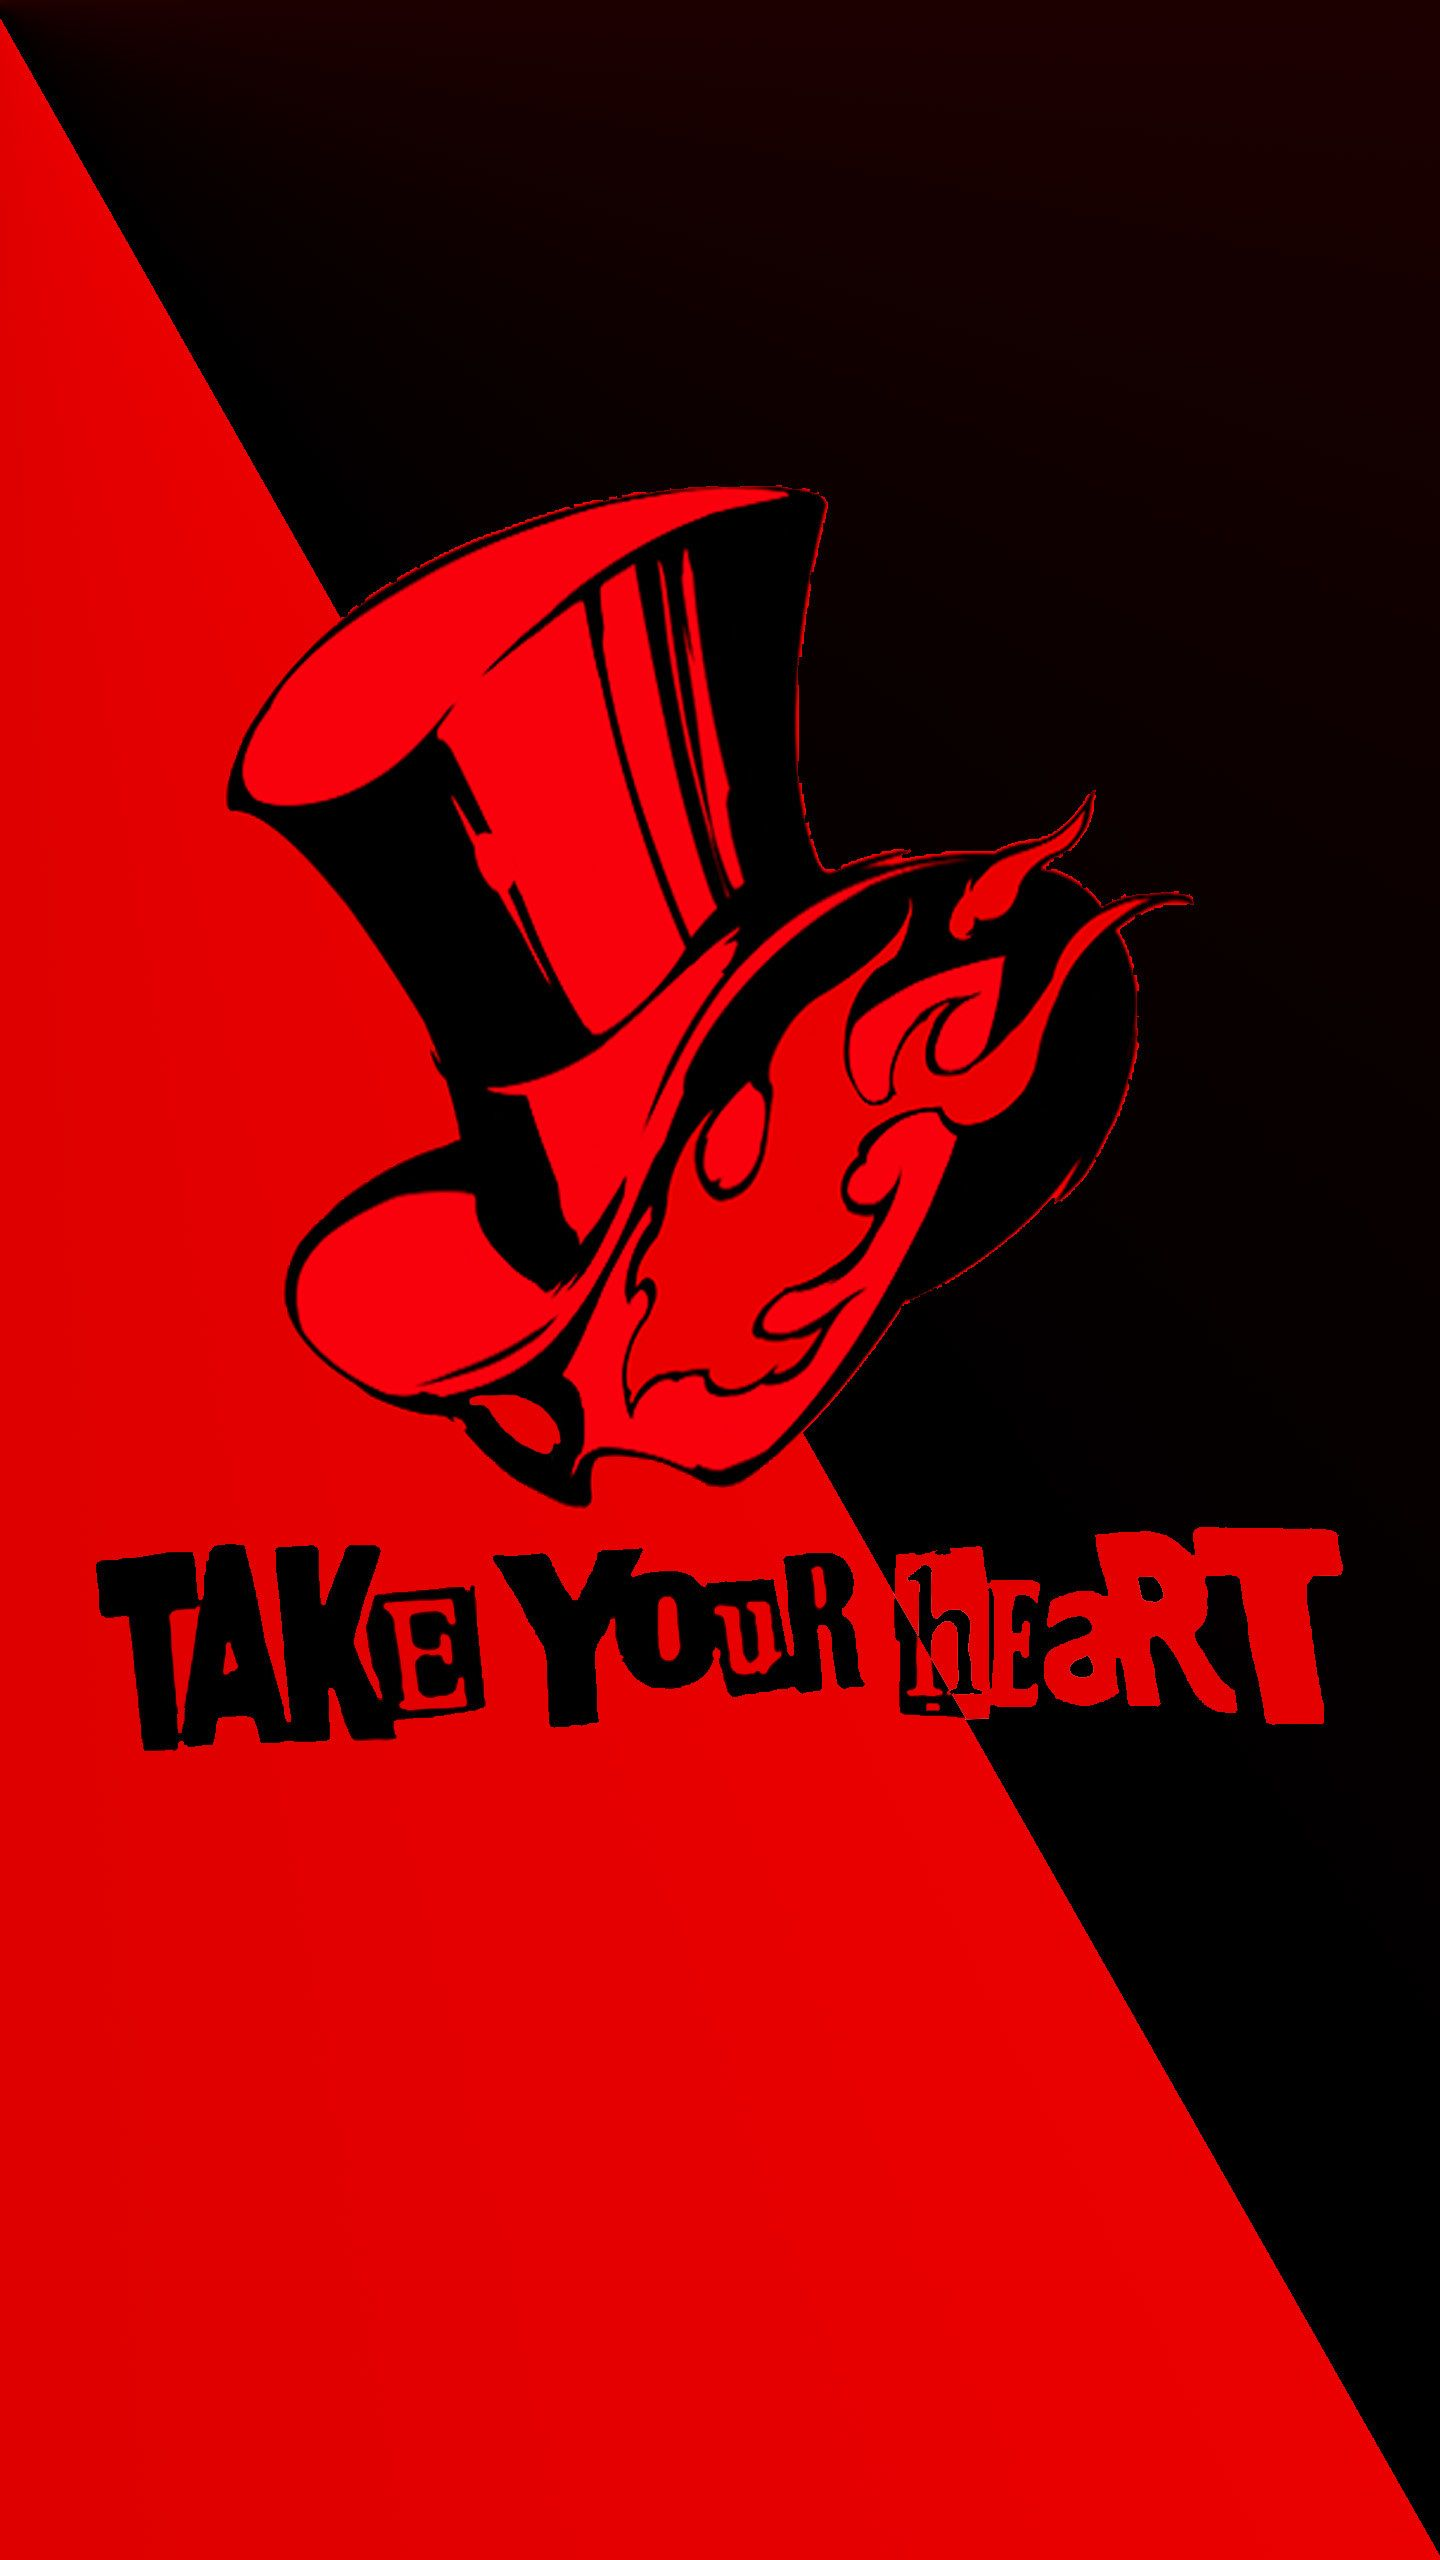 1440x2560 Persona 5 Hd Wallpaper For Phone Persona 5 Persona 5